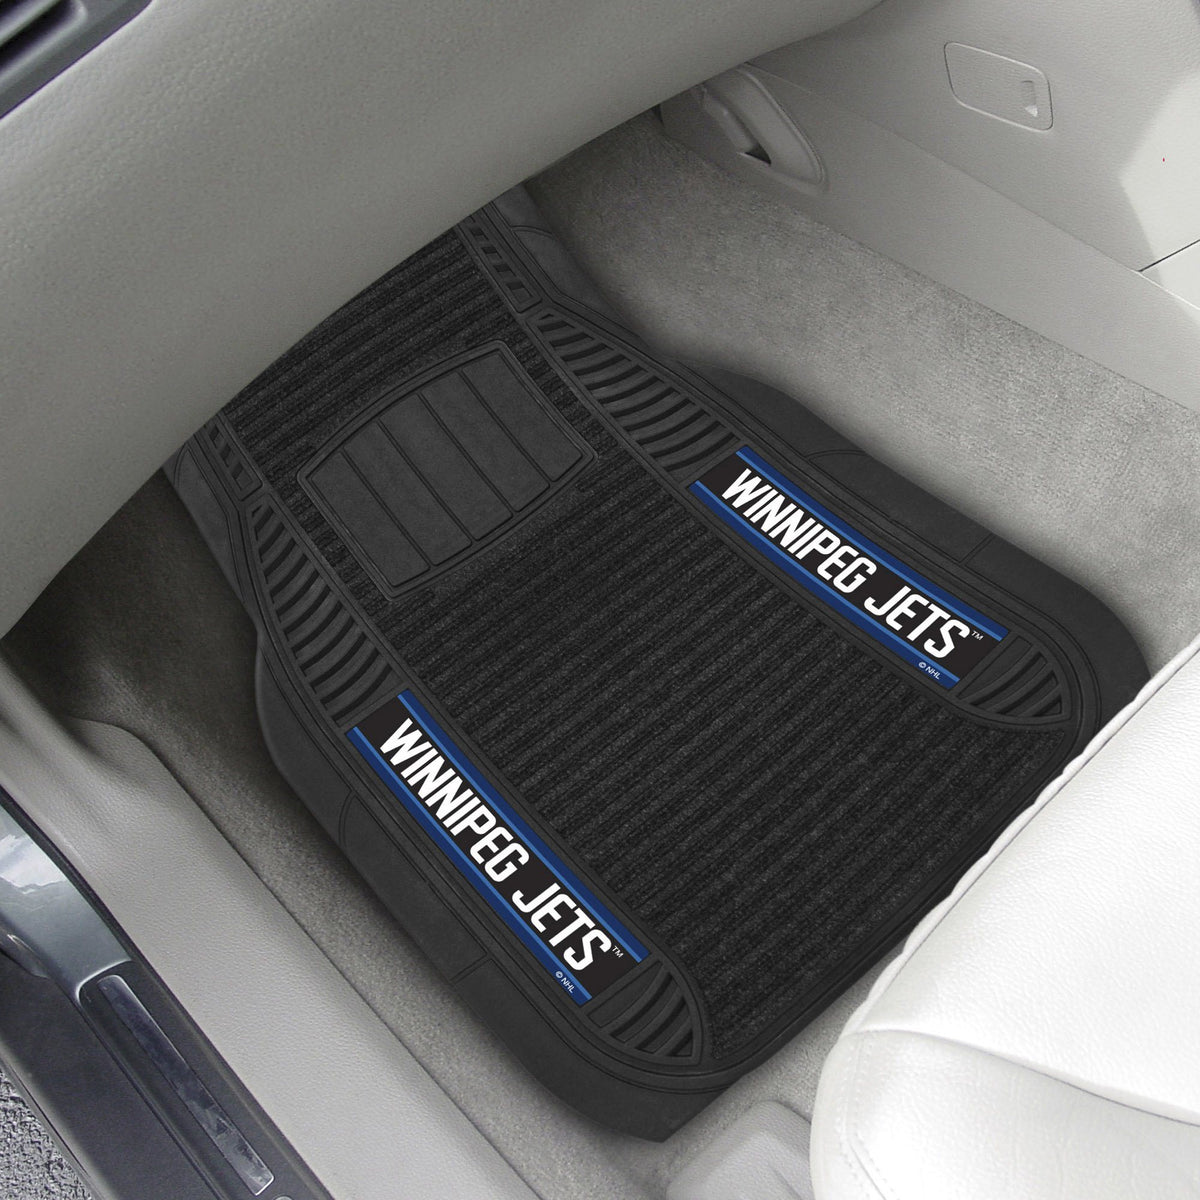 NHL - Deluxe Car Mat, 2-Piece Set NHL Mats, Front Car Mats, 2-pc Deluxe Car Mat Set, NHL, Auto Fan Mats Winnipeg Jets